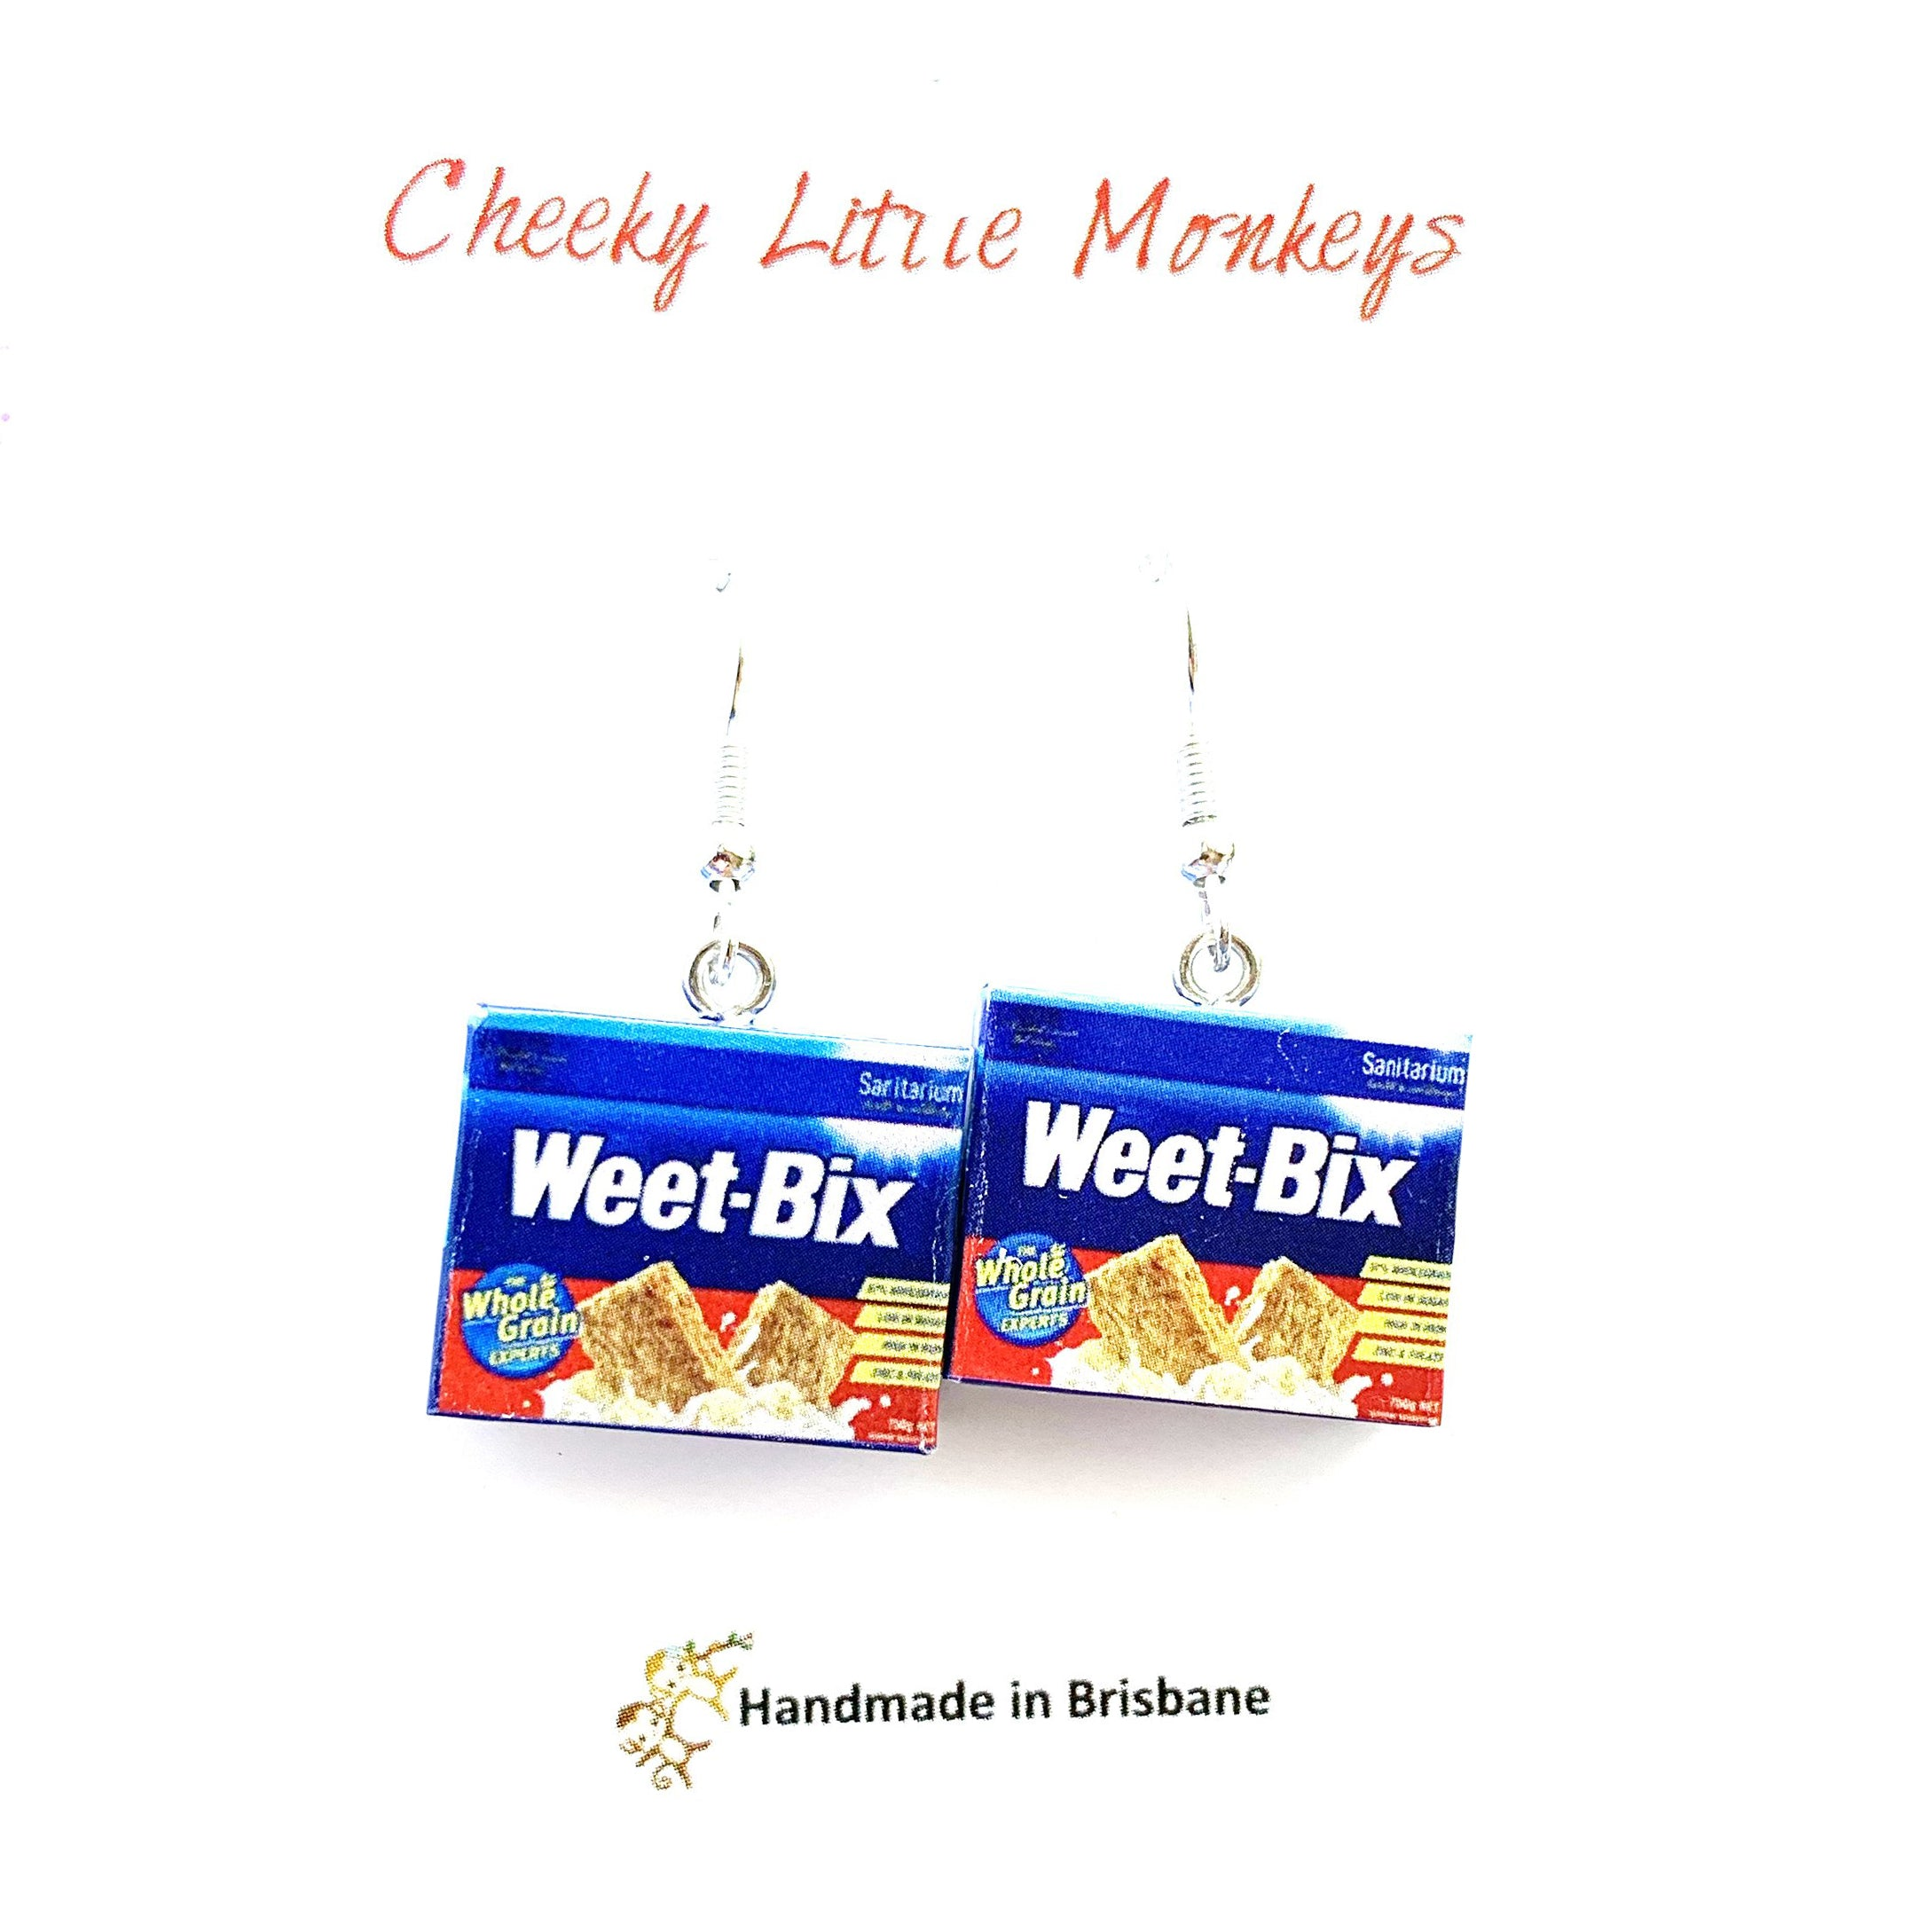 Cheeky Little Monkeys - Weet-Bix Earrings